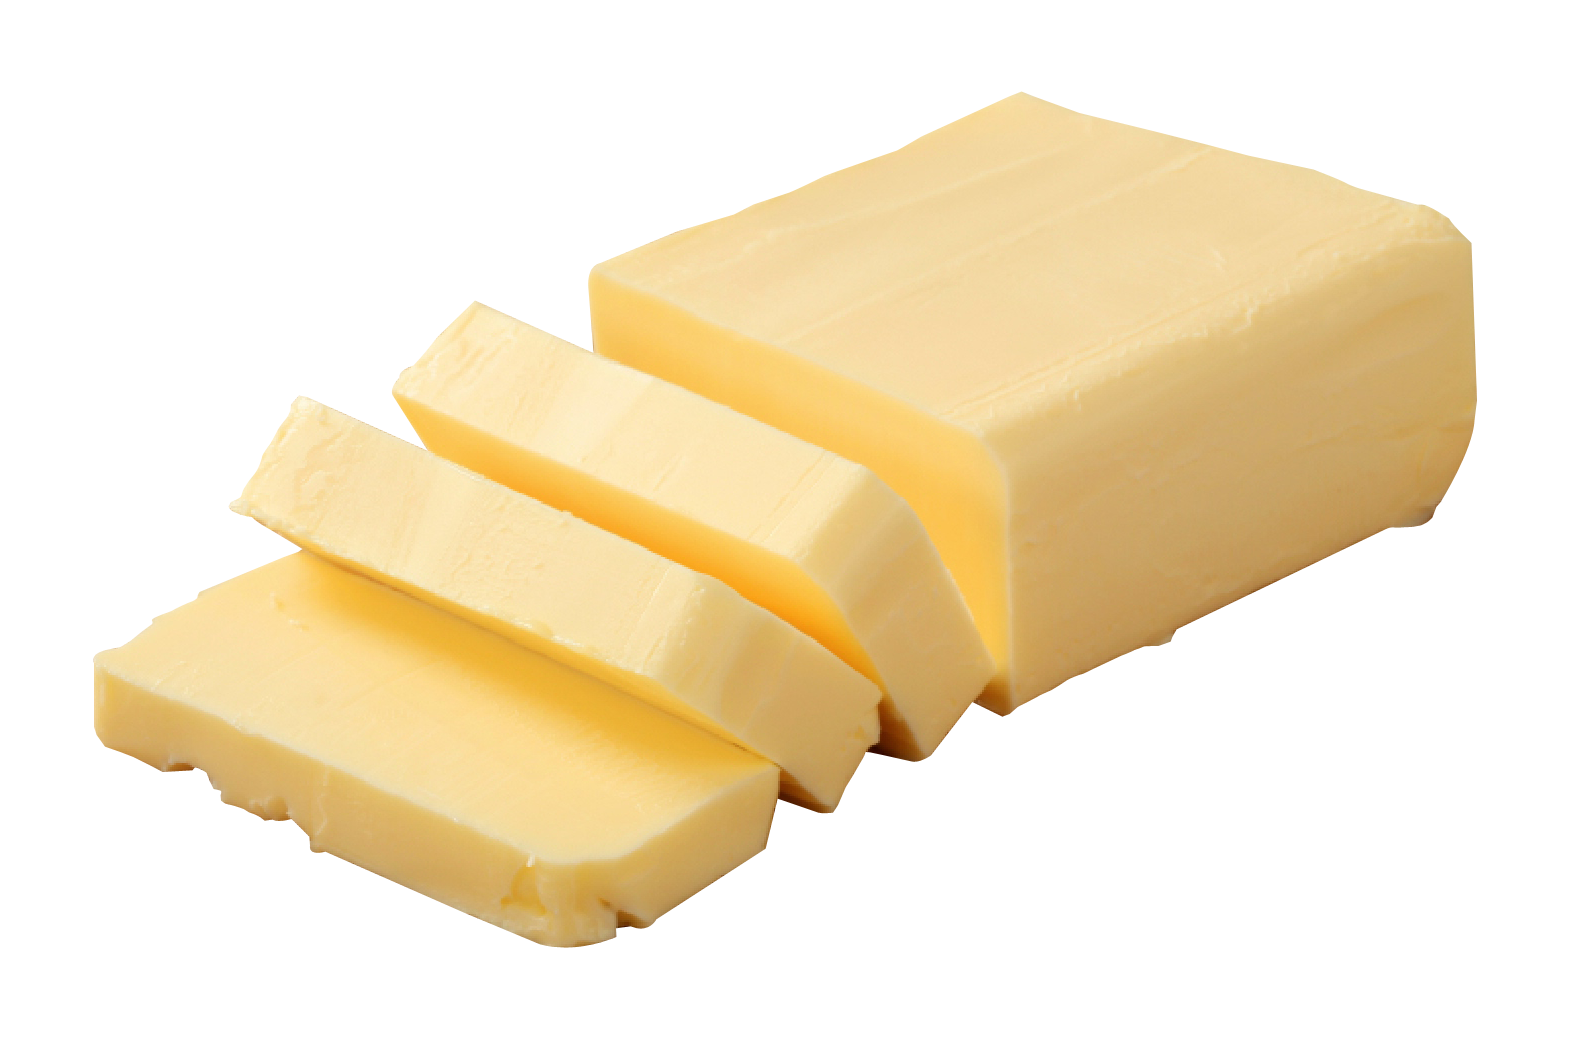 Butter PNG Transparent Image - Butter HD PNG - Butter PNG HD